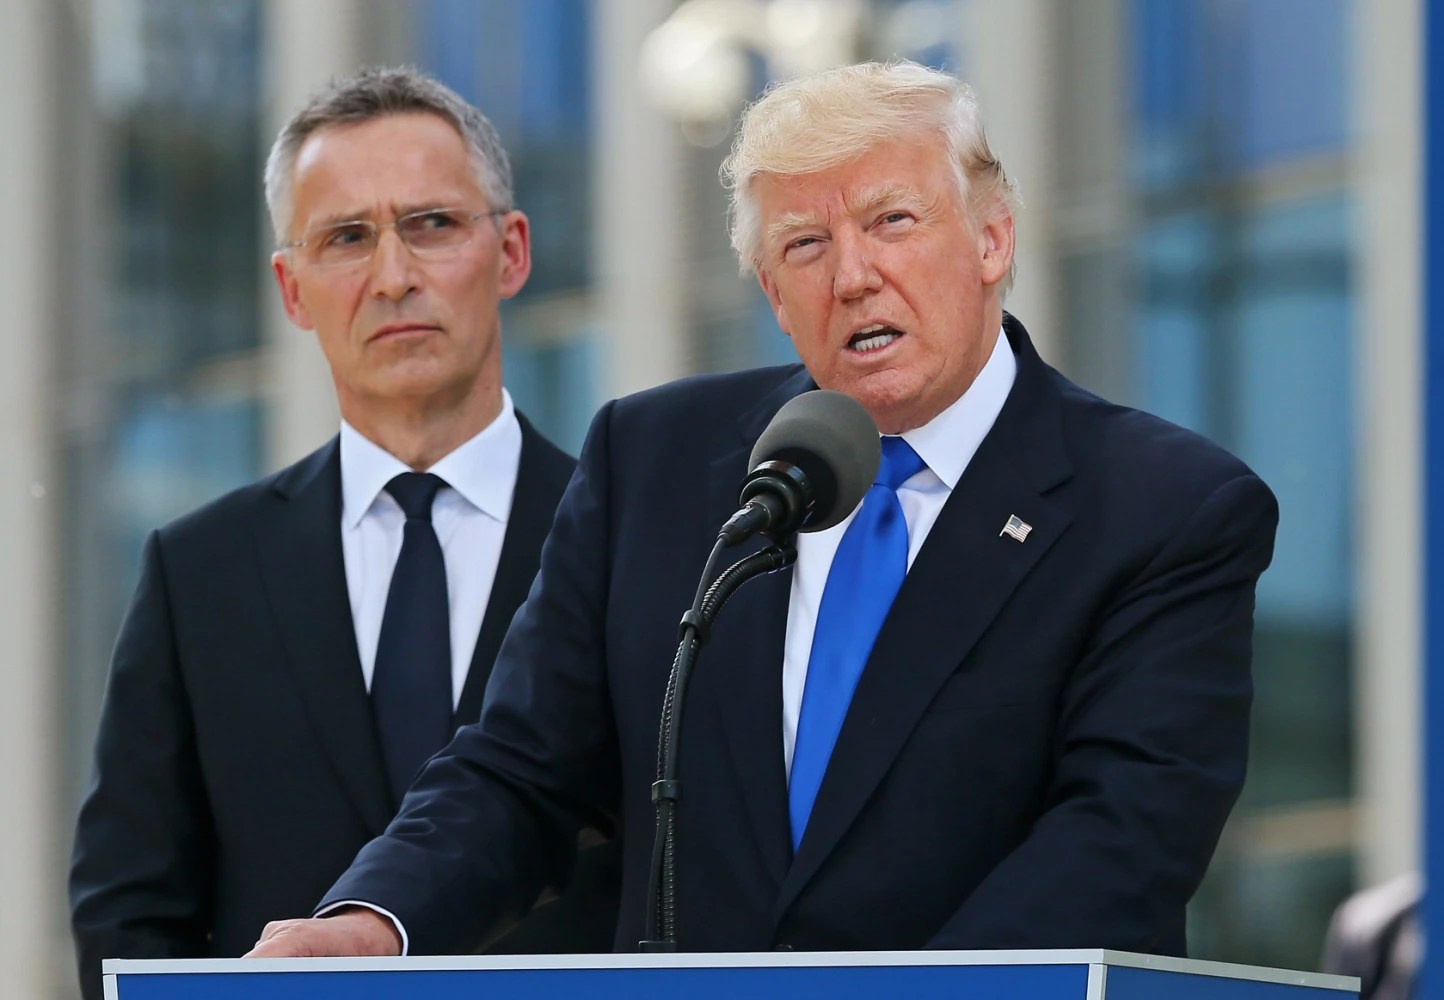 Donald Trump Appears to Shove Prime Minister Dusko Markovic at NATO Meeting